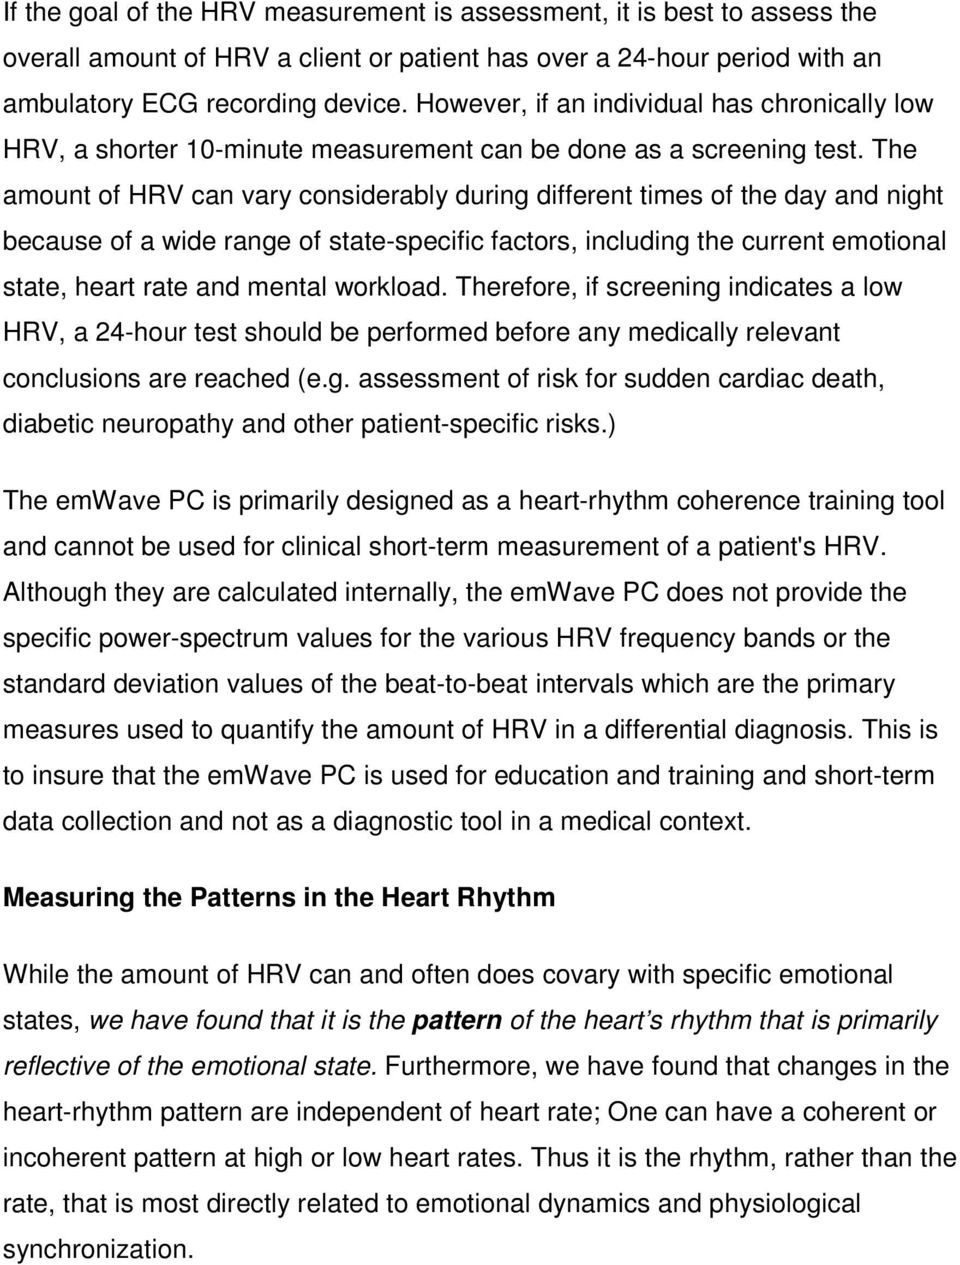 The amount of HRV can vary considerably during different times of the day and night because of a wide range of state-specific factors, including the current emotional state, heart rate and mental